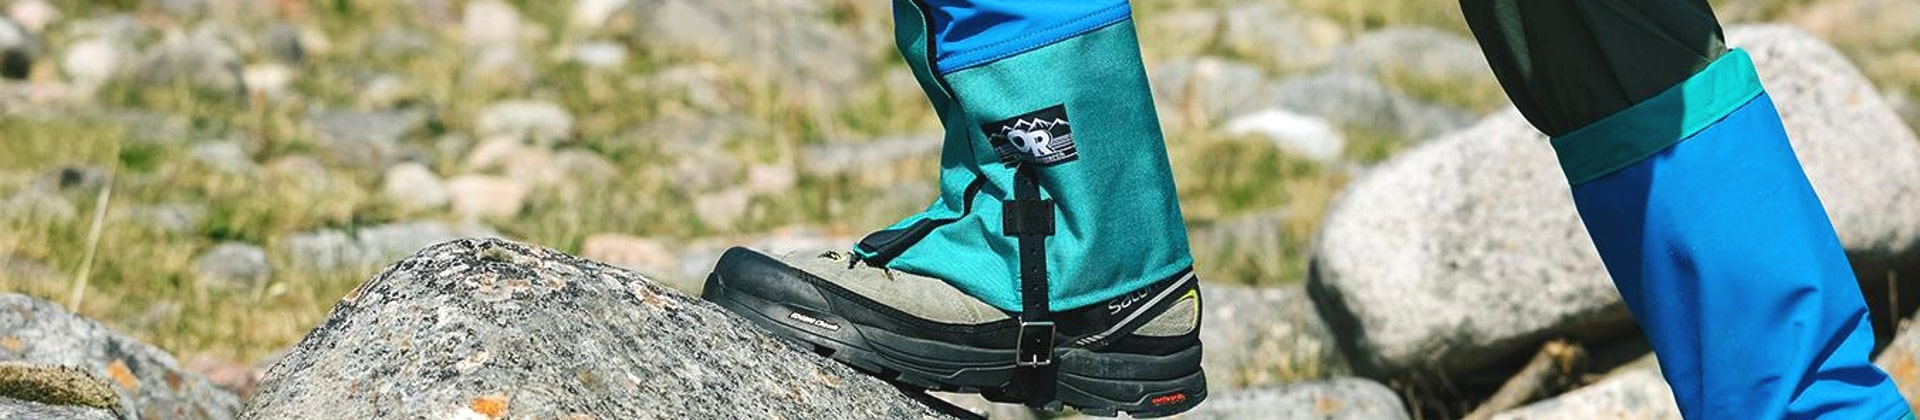 Best Gaiters for Hunting Reviewed in Detail